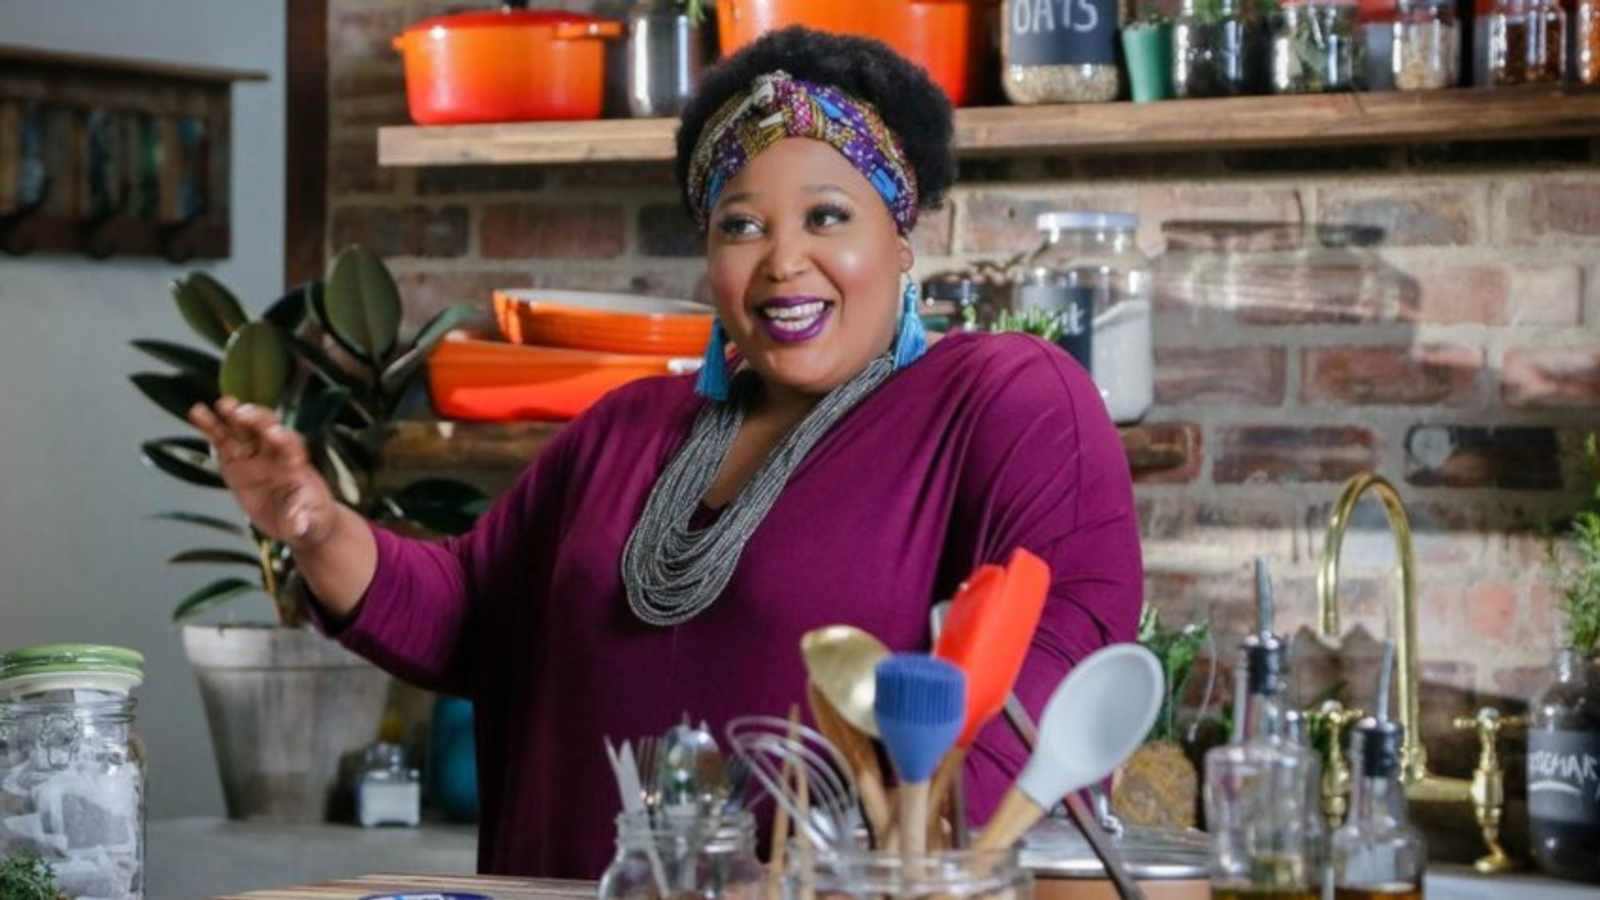 Chef Zola Nene's baking tips and tricks